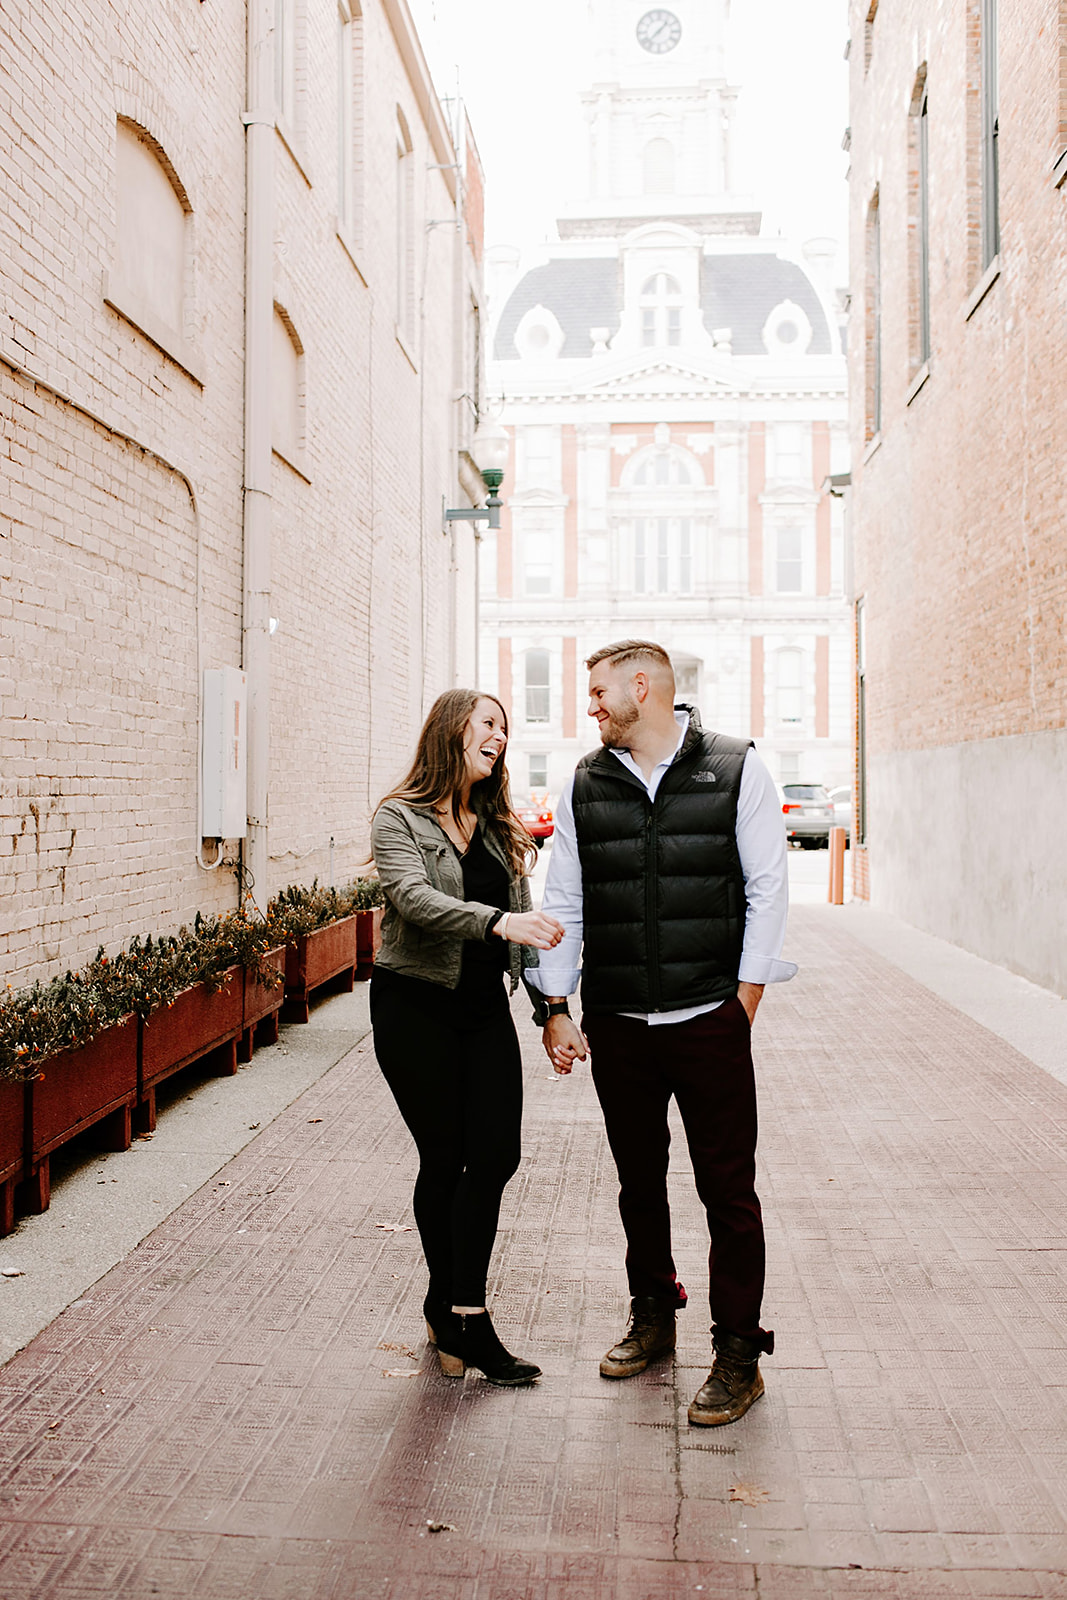 Holly and Michael Engagement Session in Noblesville Indiana by Emily Elyse Wehner Photography LLC-90.jpg